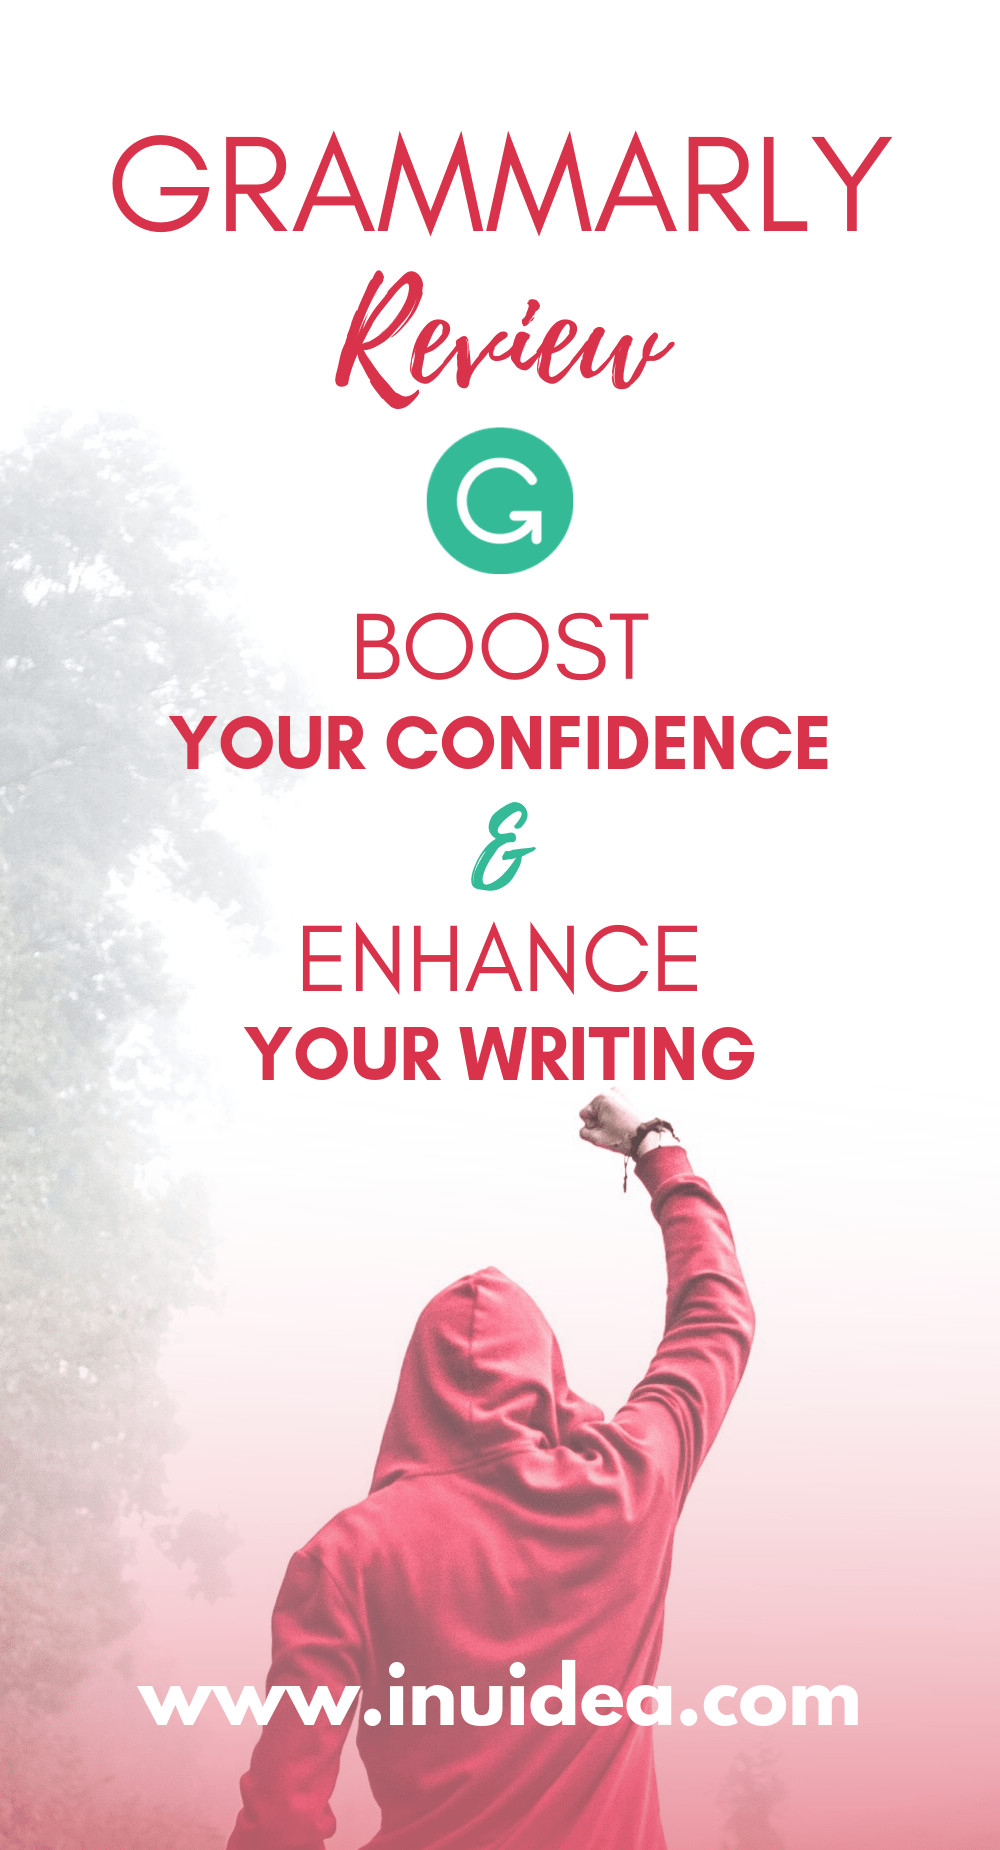 Grammarly Book